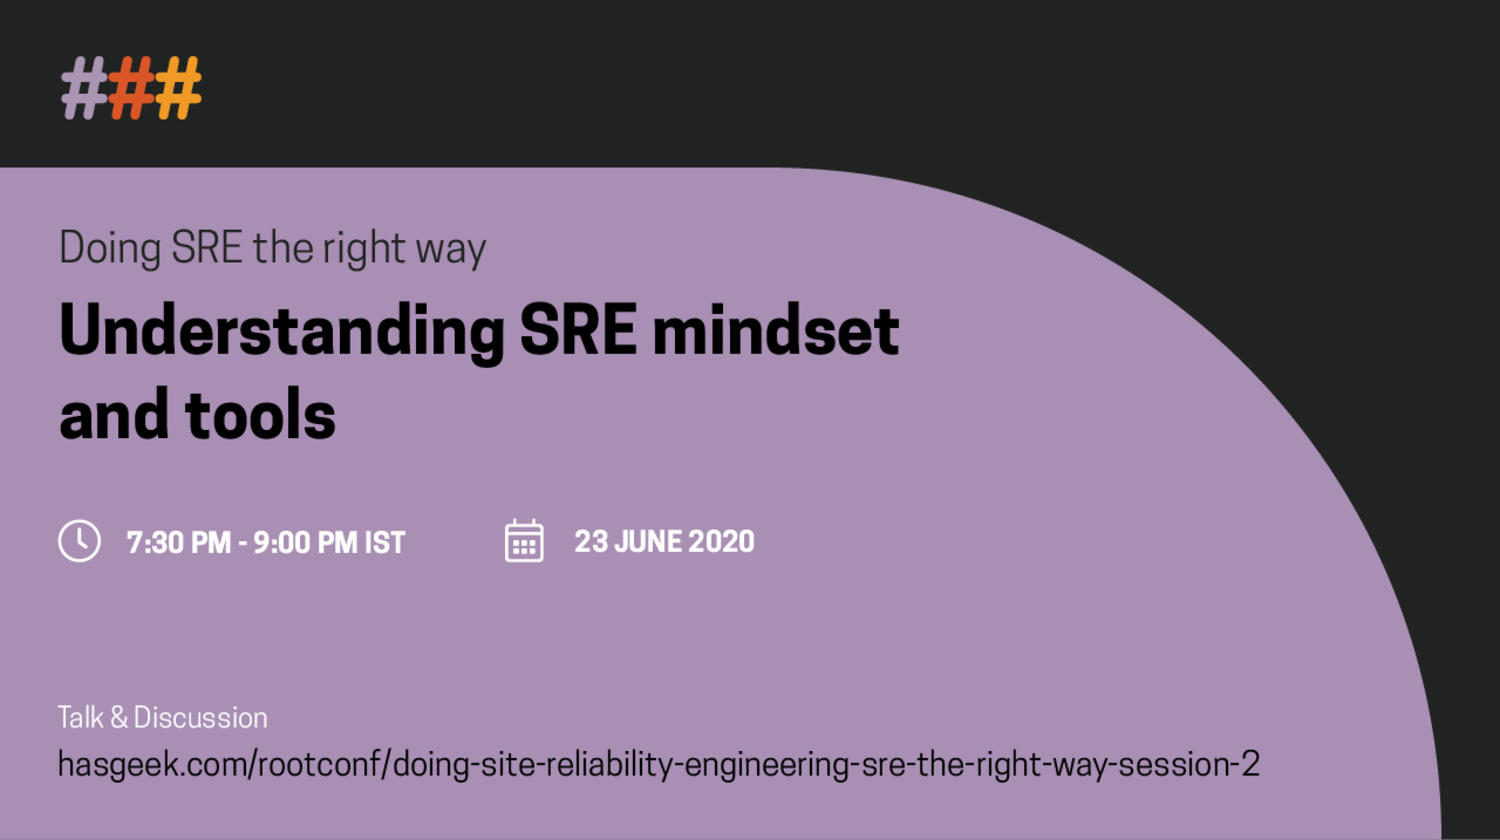 Doing Site Reliability Engineering (SRE) the right way - session 2